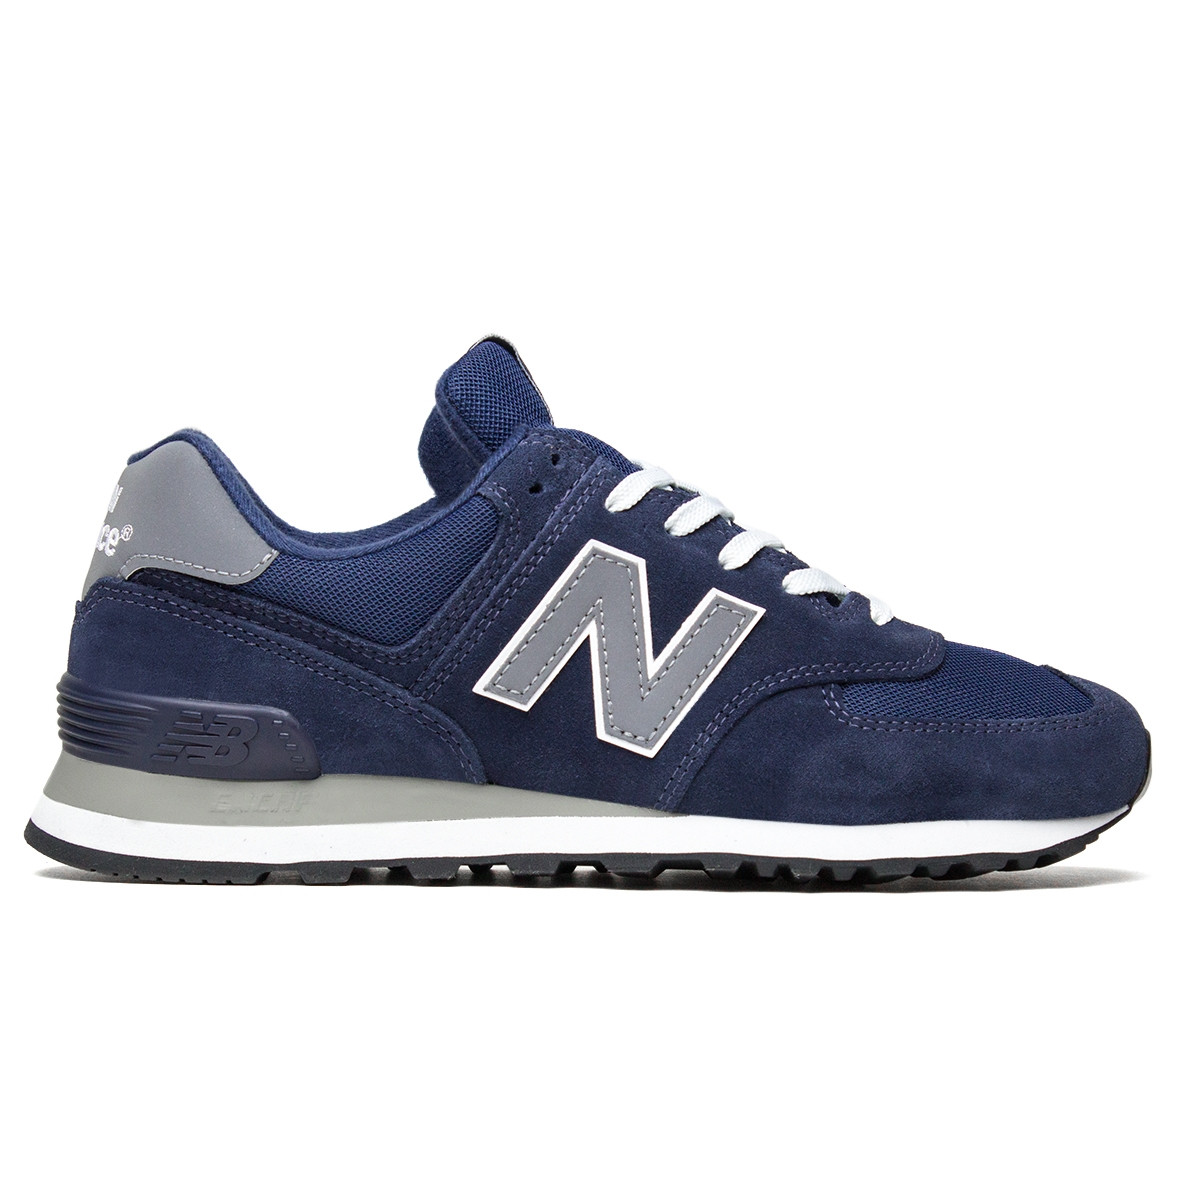 New Balance 420 Azul Brillante New Balance 574 Azul Of 47  Impresionante New Balance 420 Azul